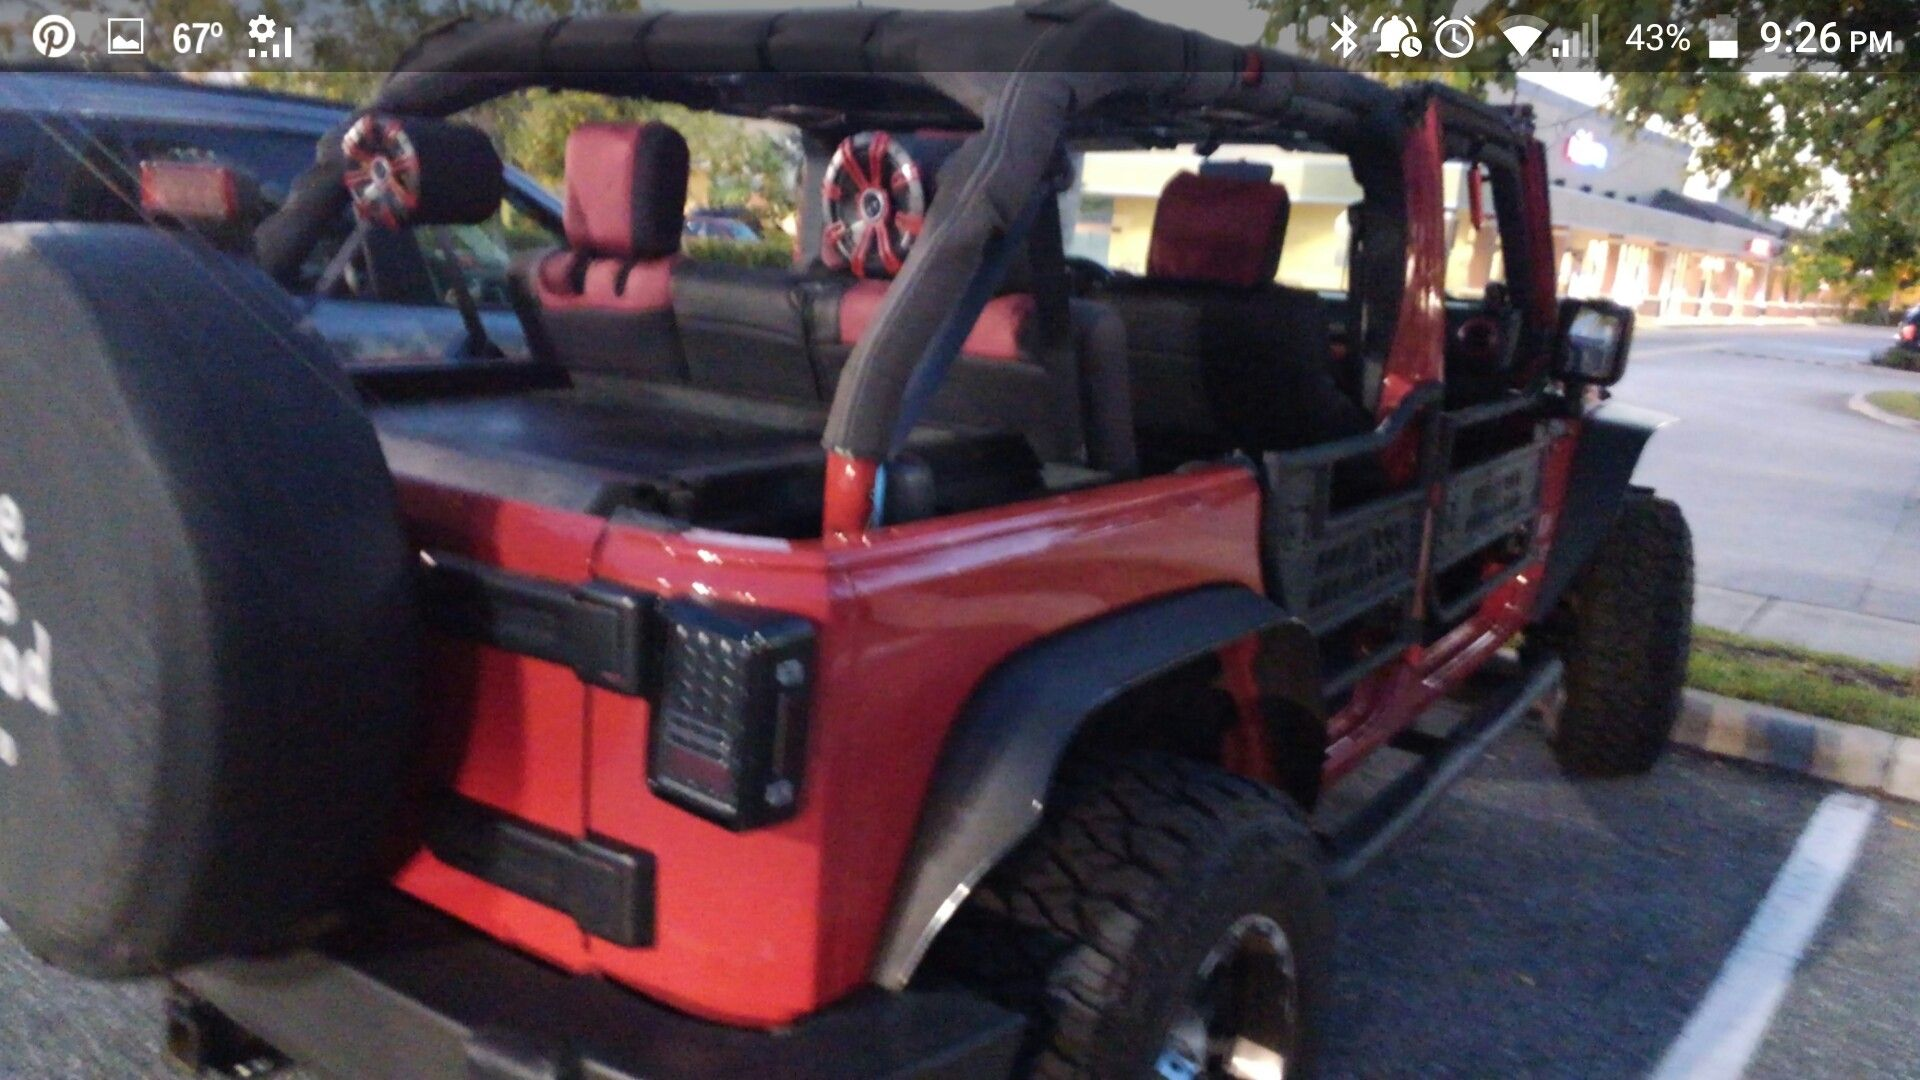 Pin by doug ramsey on jeep wakeboard speakers   Monster trucks, Jeep, Car